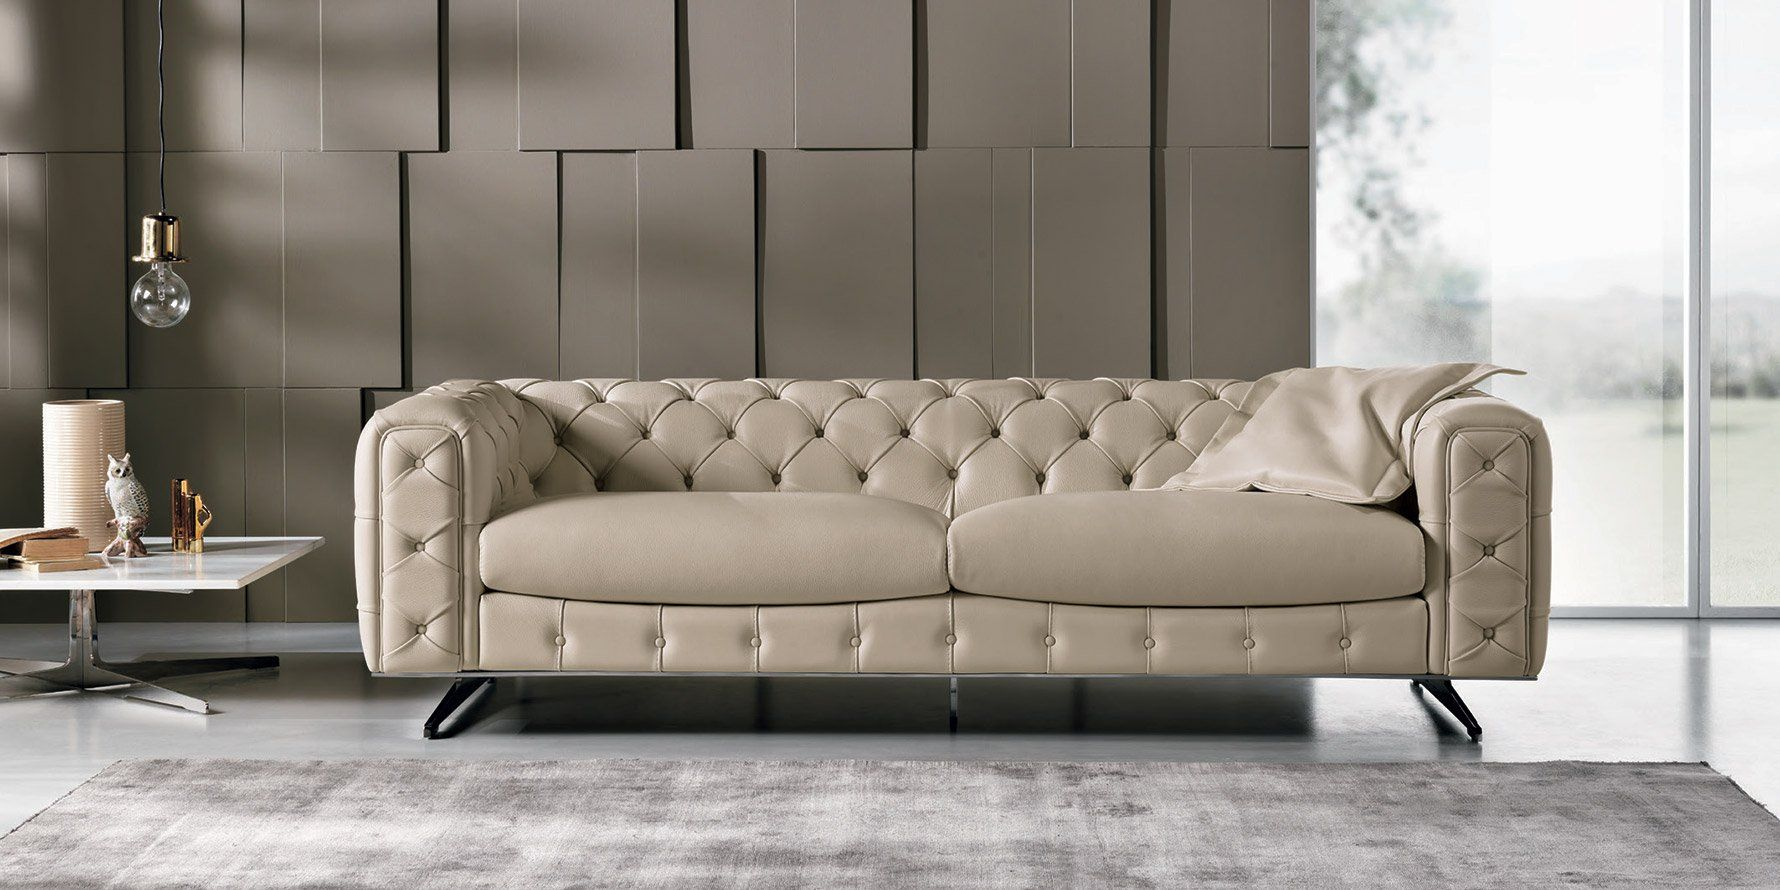 The Ingrid Sofa And Loveseat From Max Divani Italy. Tufted